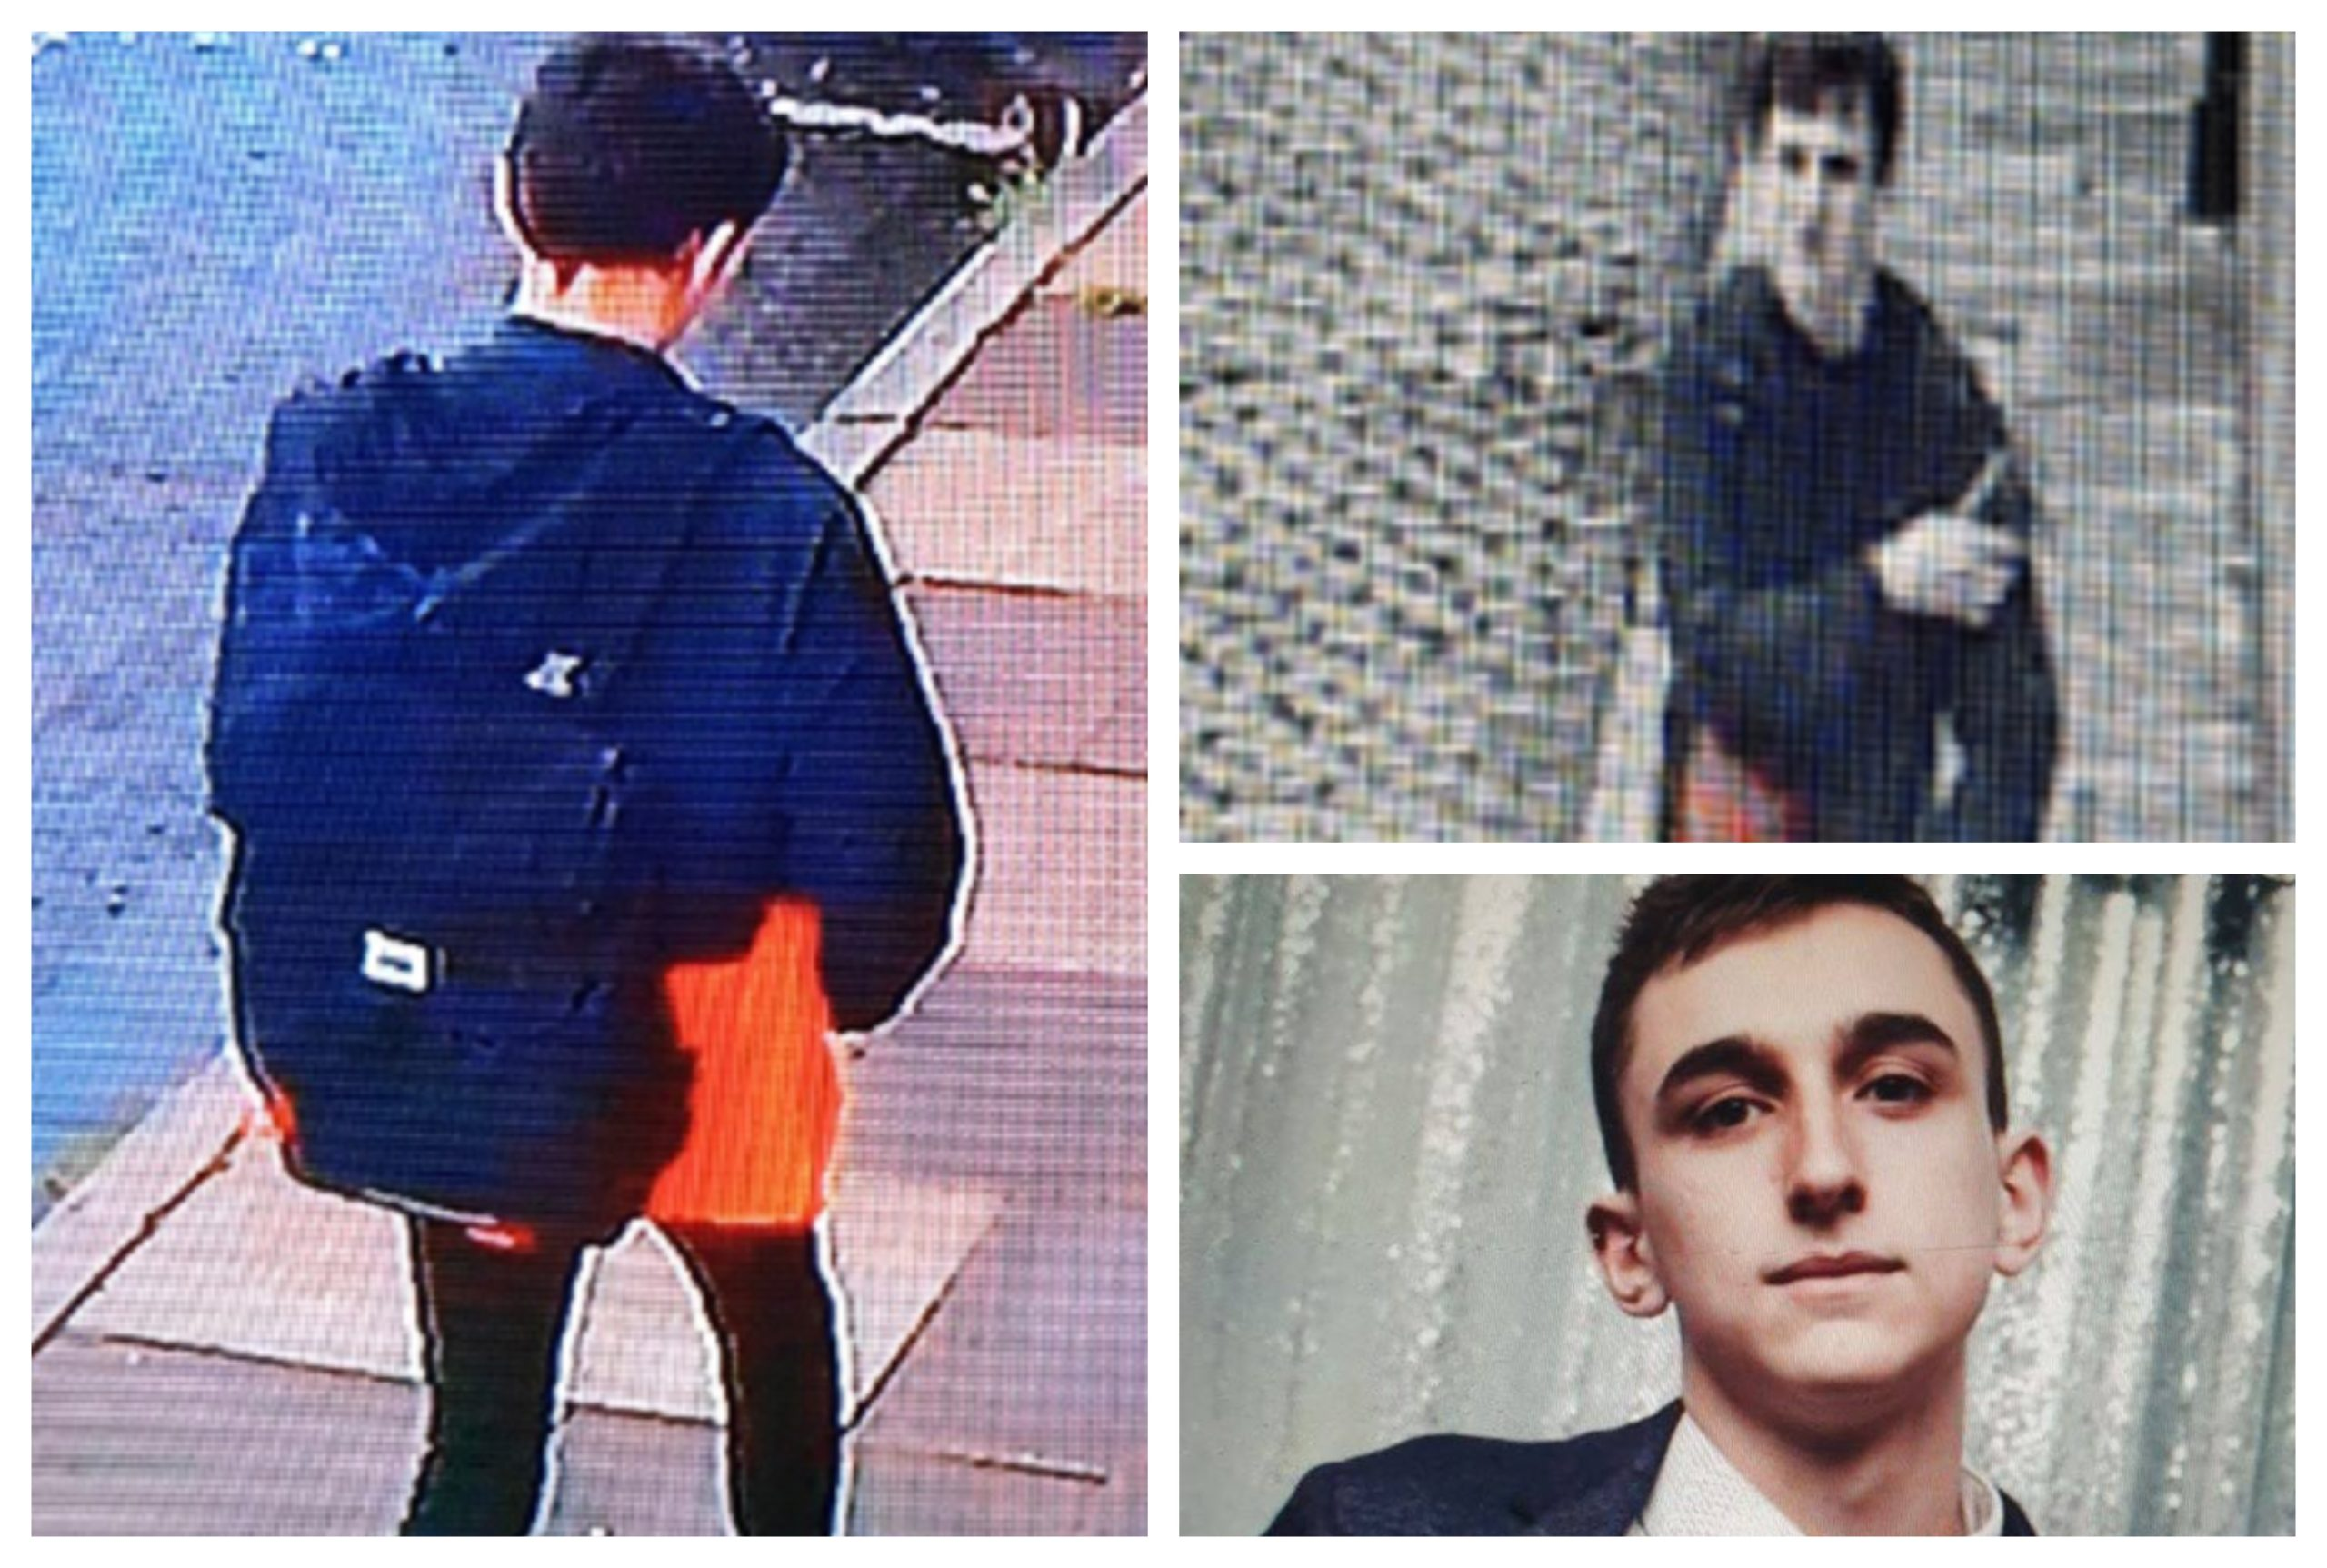 CCTV images of David MacLeod have been released.